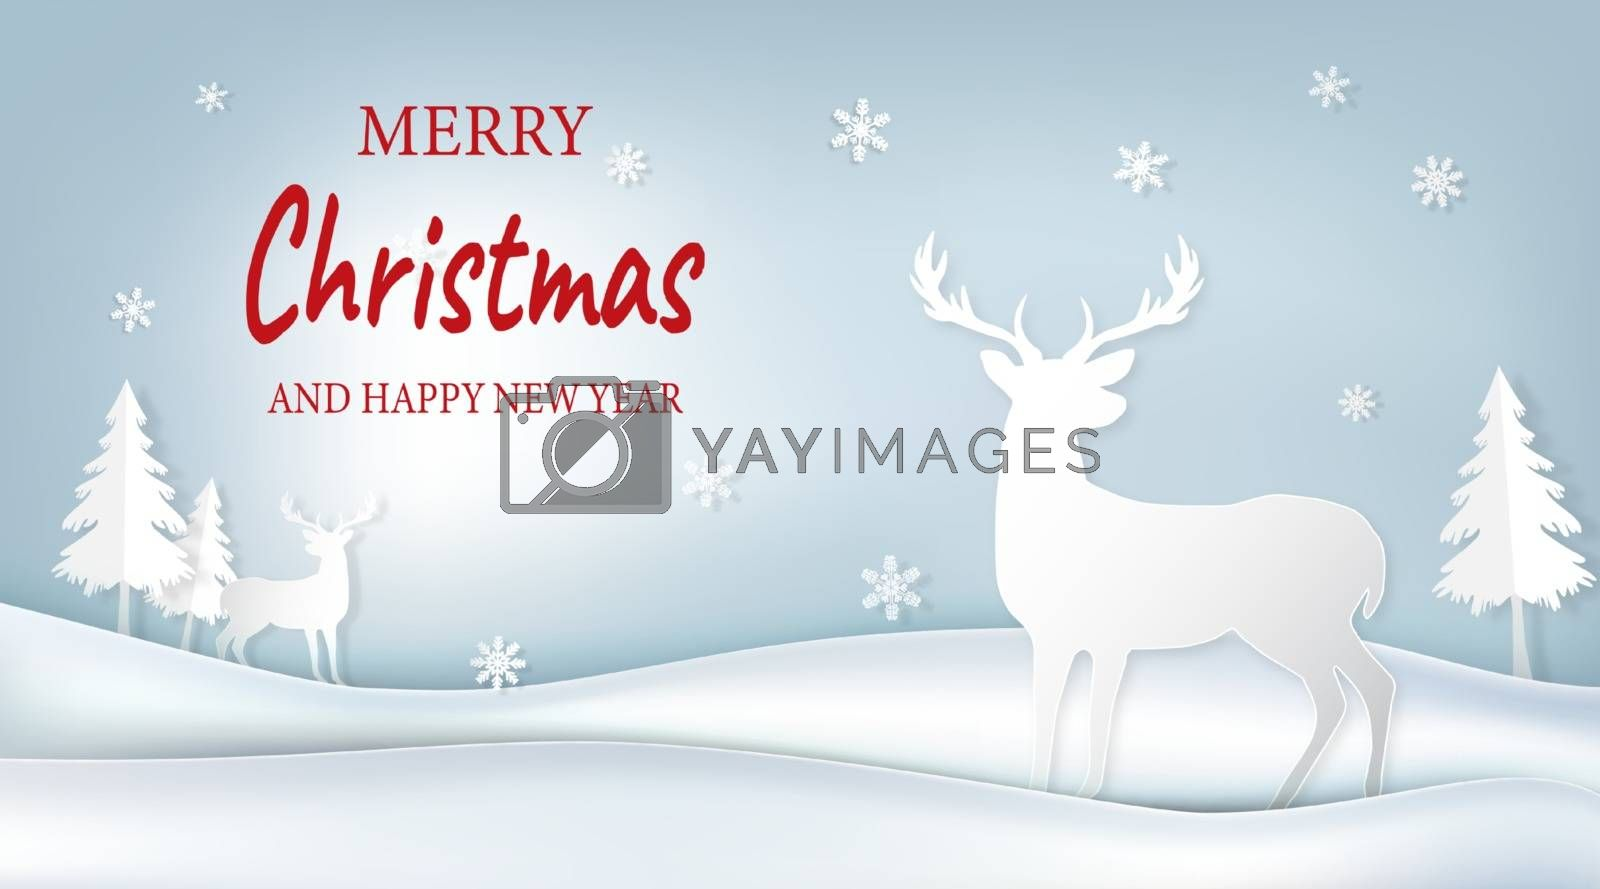 Paper art of cute reindeer and pine tree on blue sky background illustration